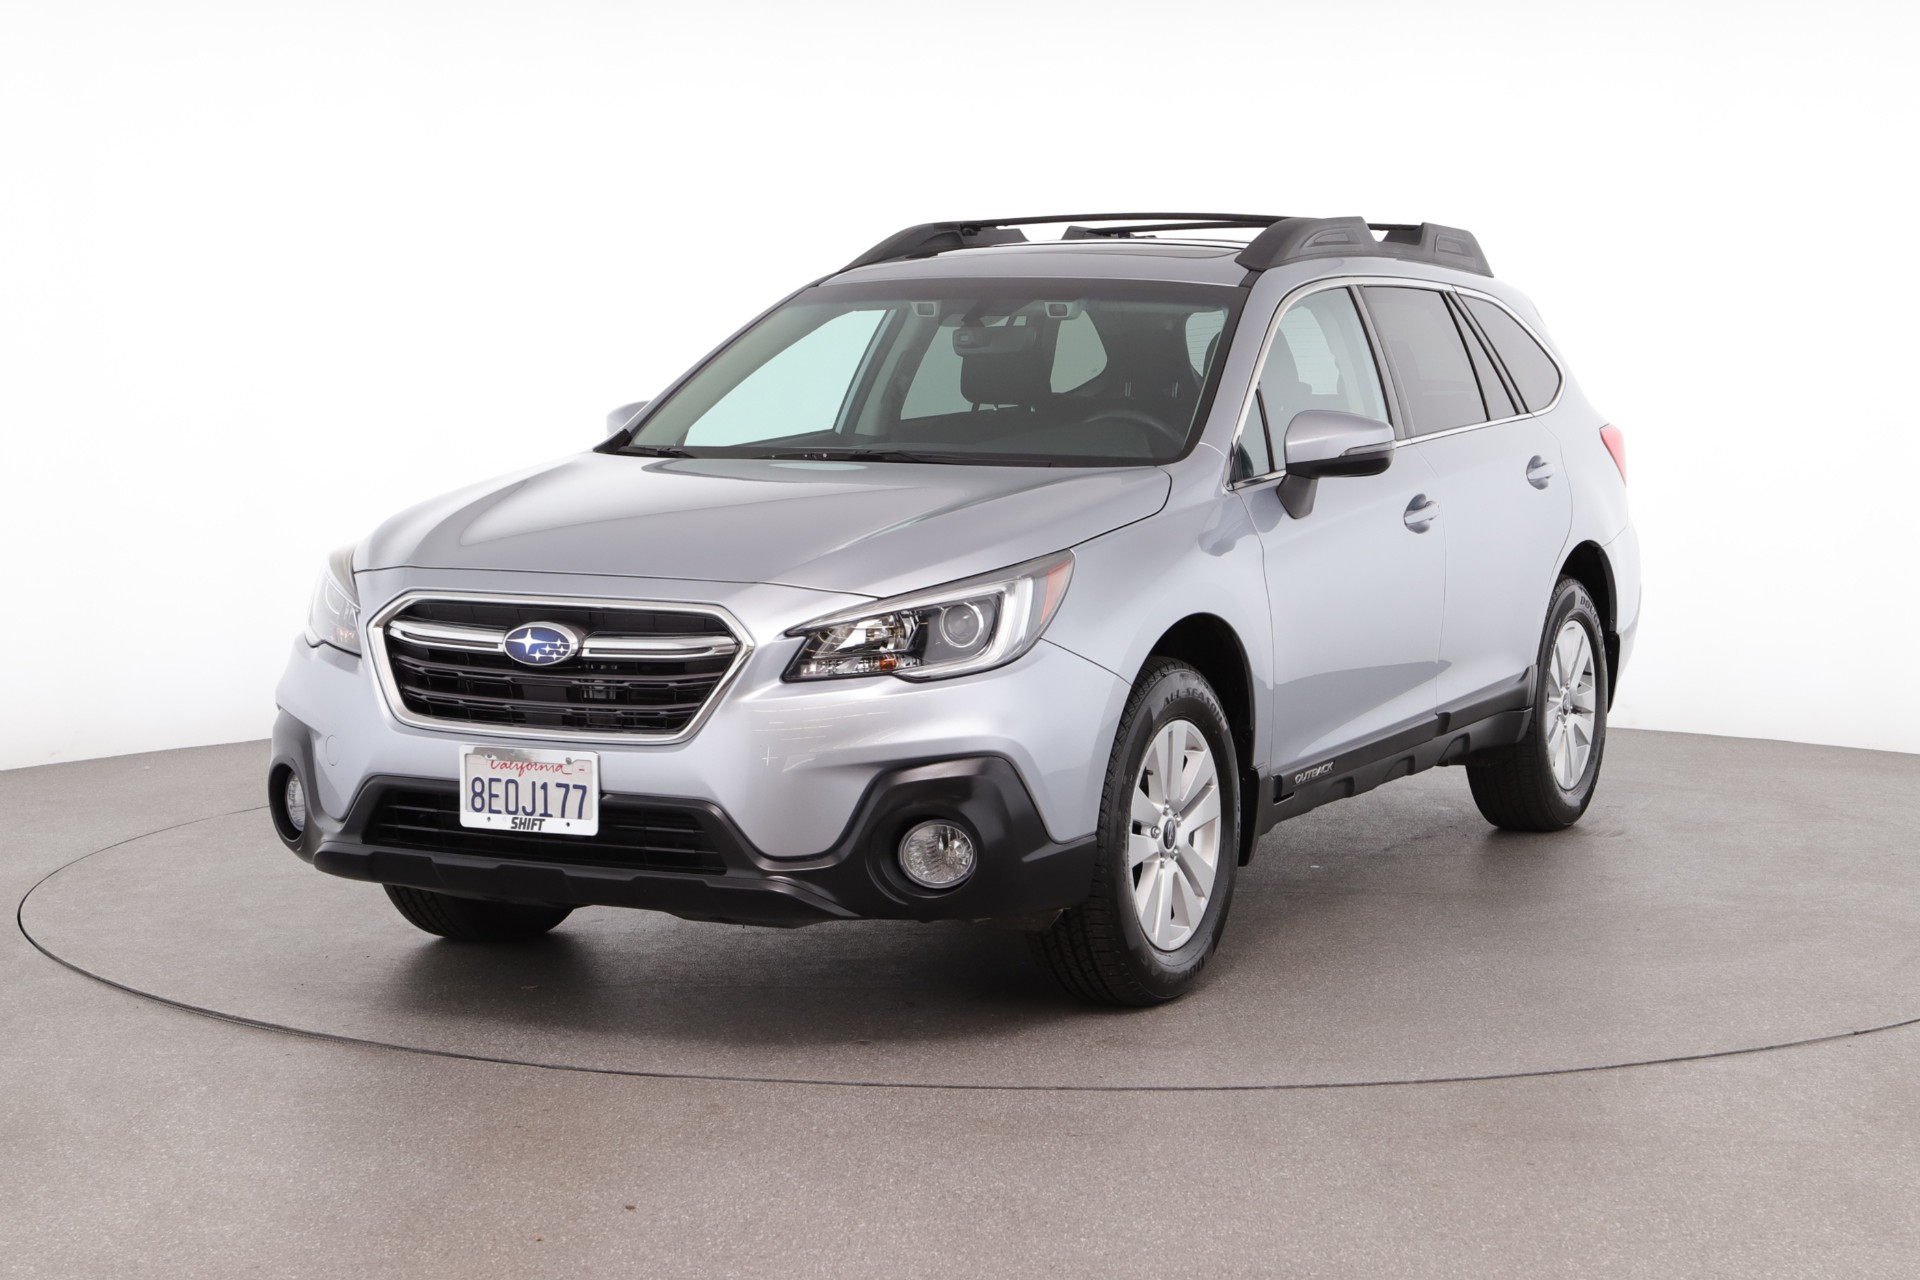 Everything on the Subaru Outback: Prices, Mileage, and Specs